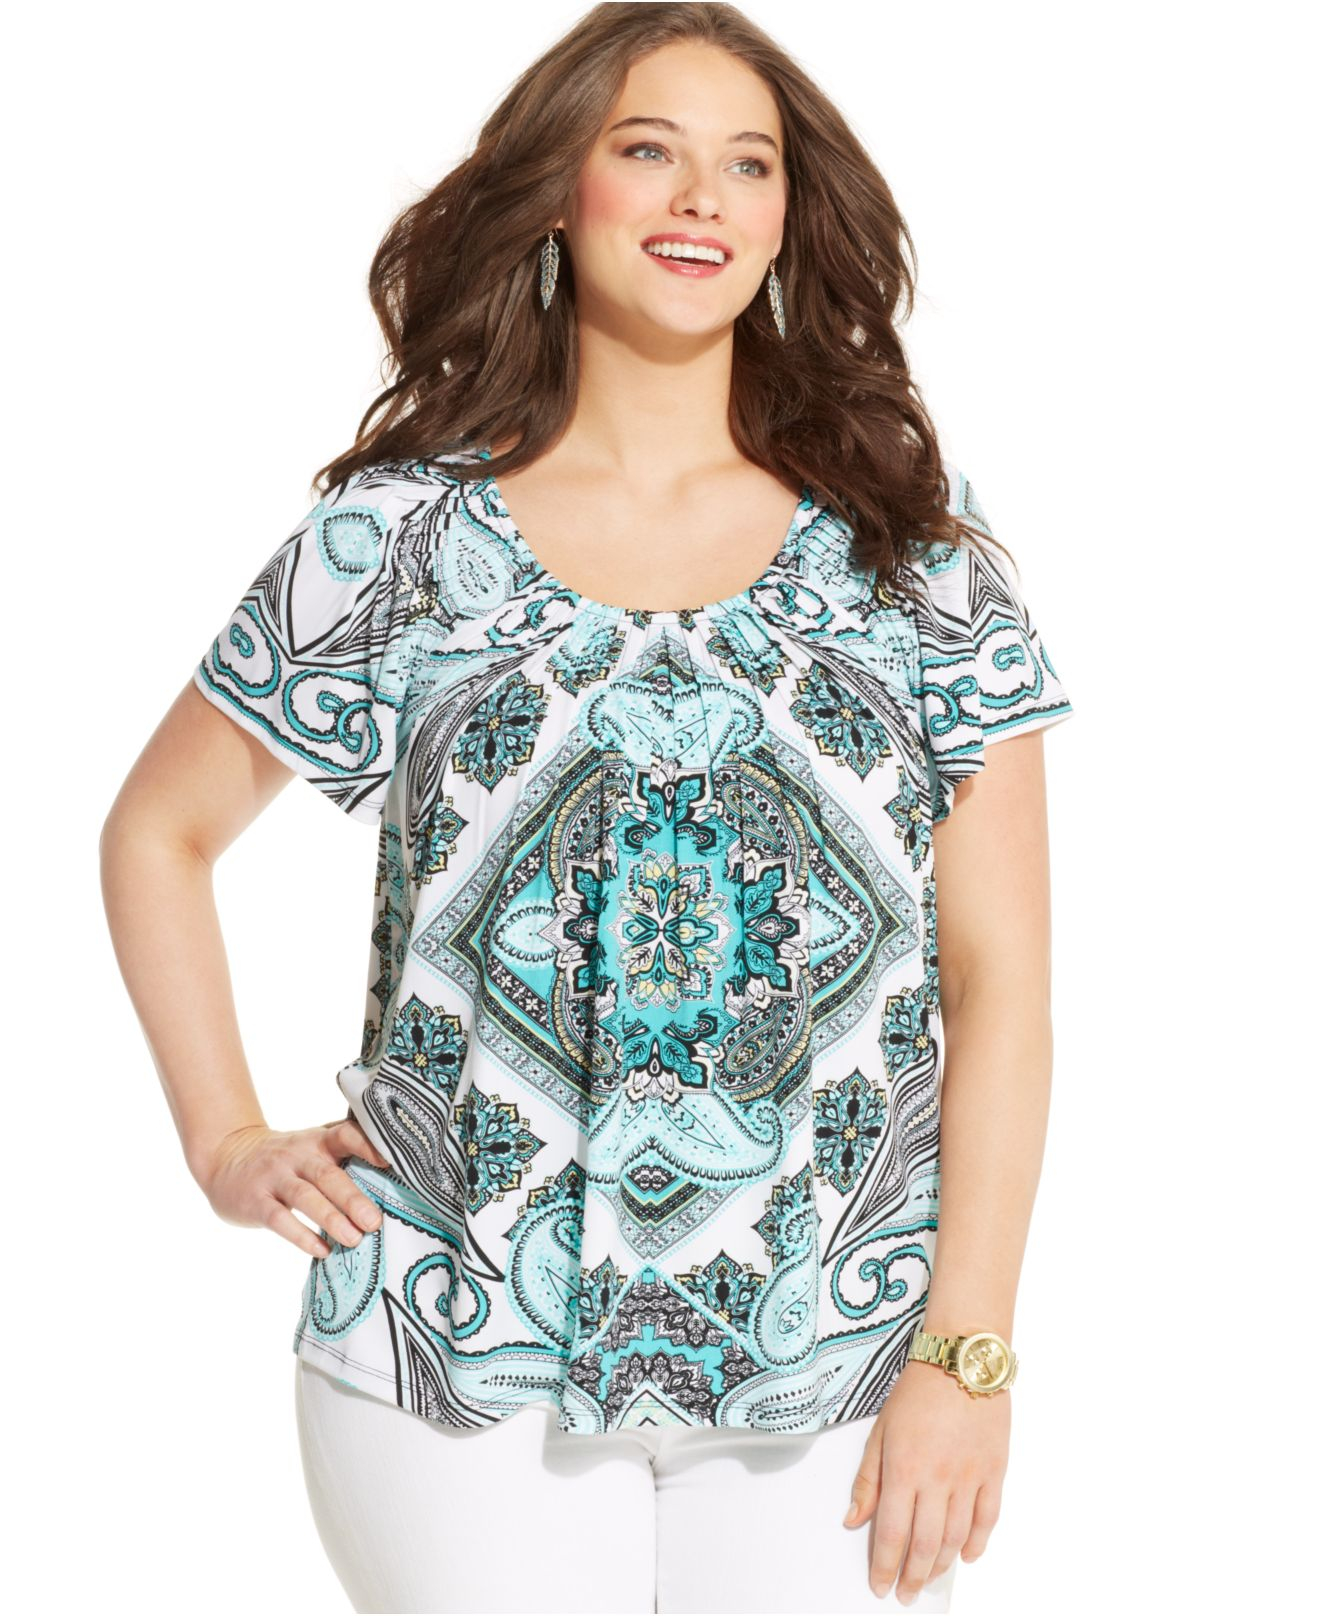 Shop Women's Clothes at JCPenney and Explore New Looks Exploring and trying out Earn Rewards Points· % Off Boots· 60% Off Outerwear· Free Shipping to Stores,+ followers on Twitter.